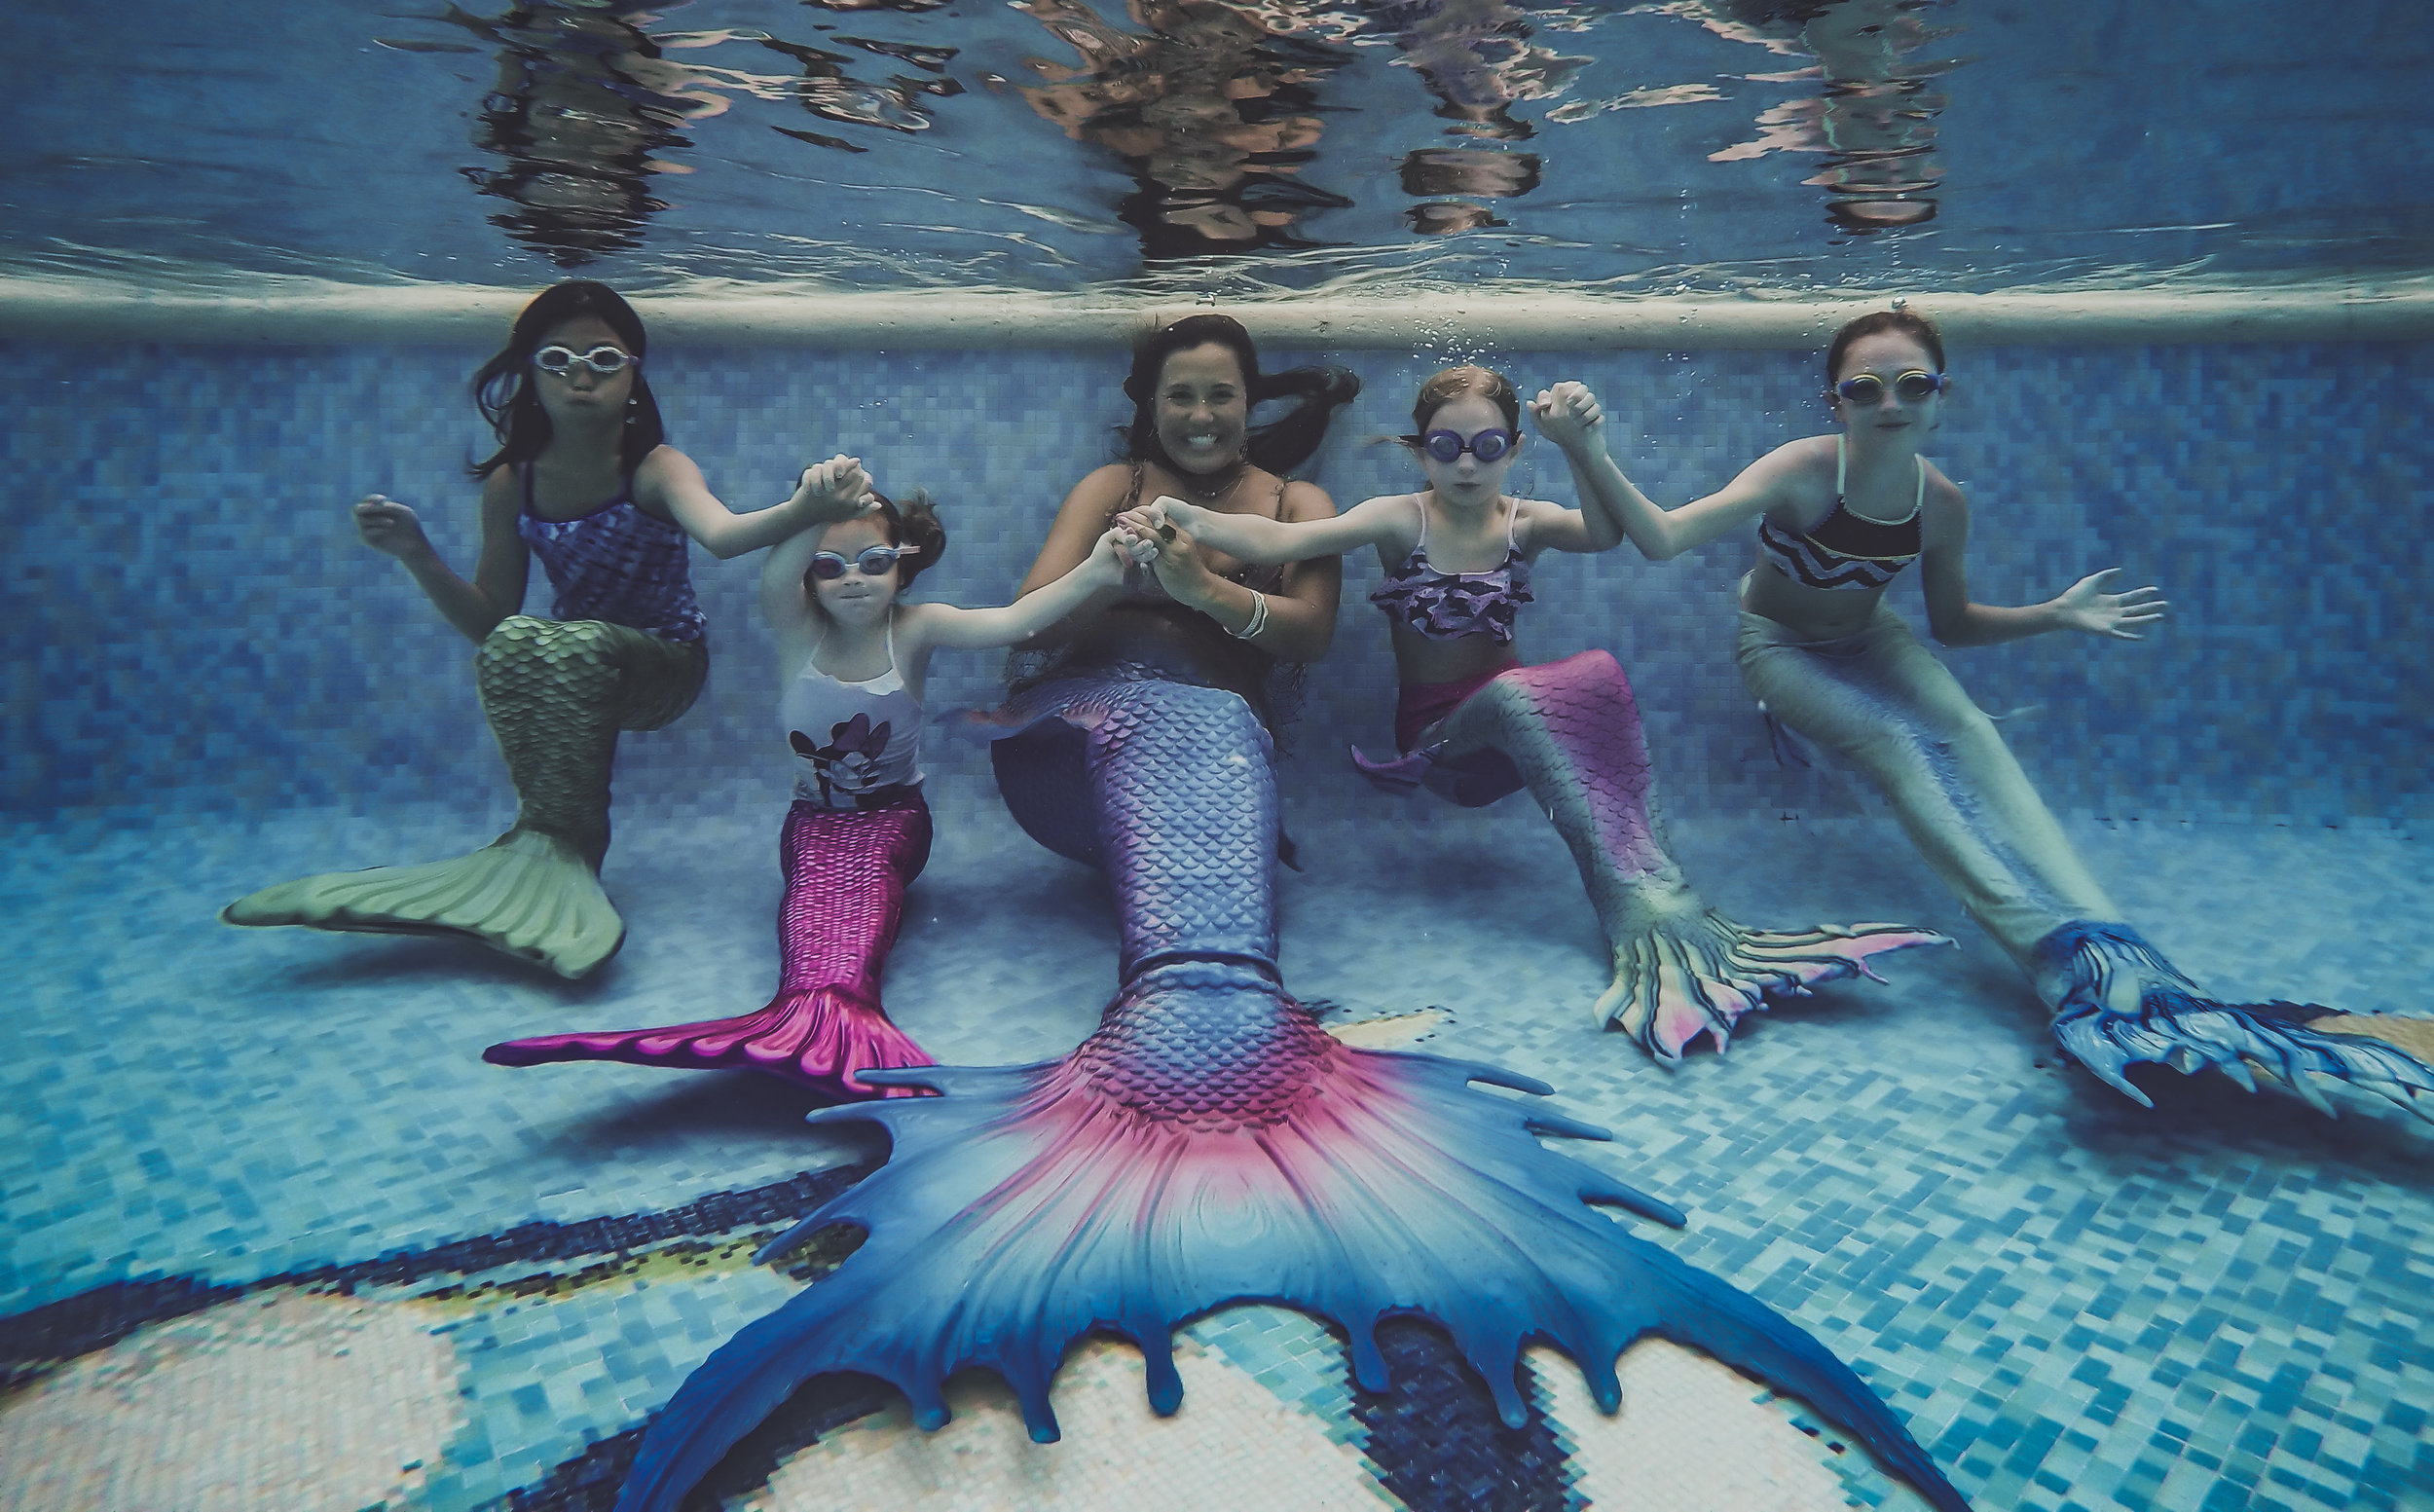 Explore your inner mermaid! - Our Mermaid Pool Adventures are designed for children age 4 and up - and are sure to be the hit of their vacation!